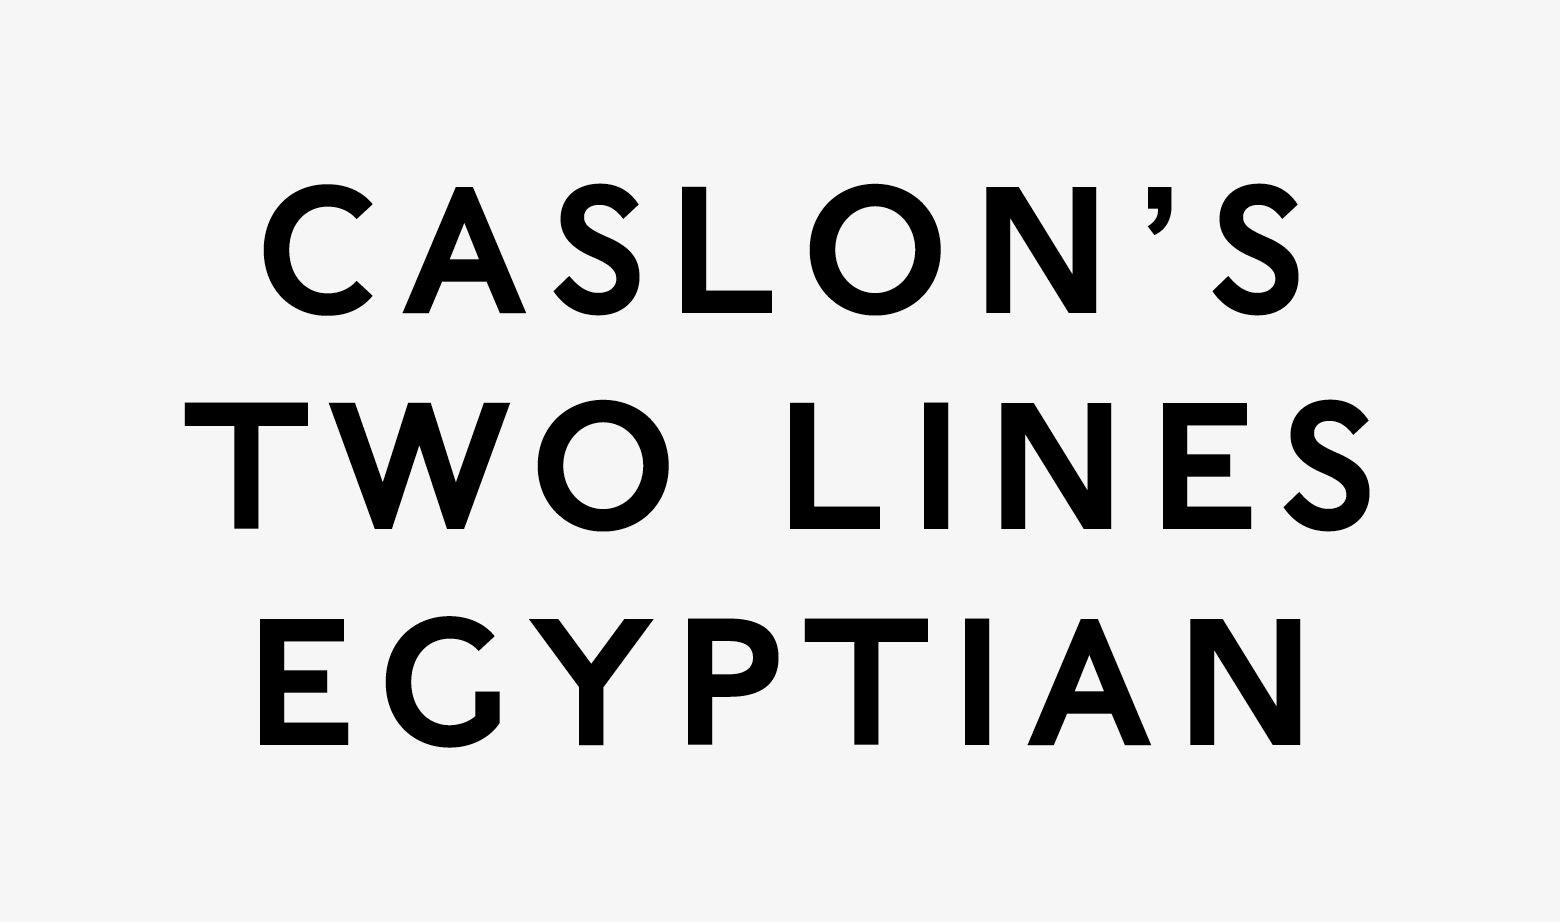 Typeface styles: Caslon's Egyptian was the first sans serif typeface